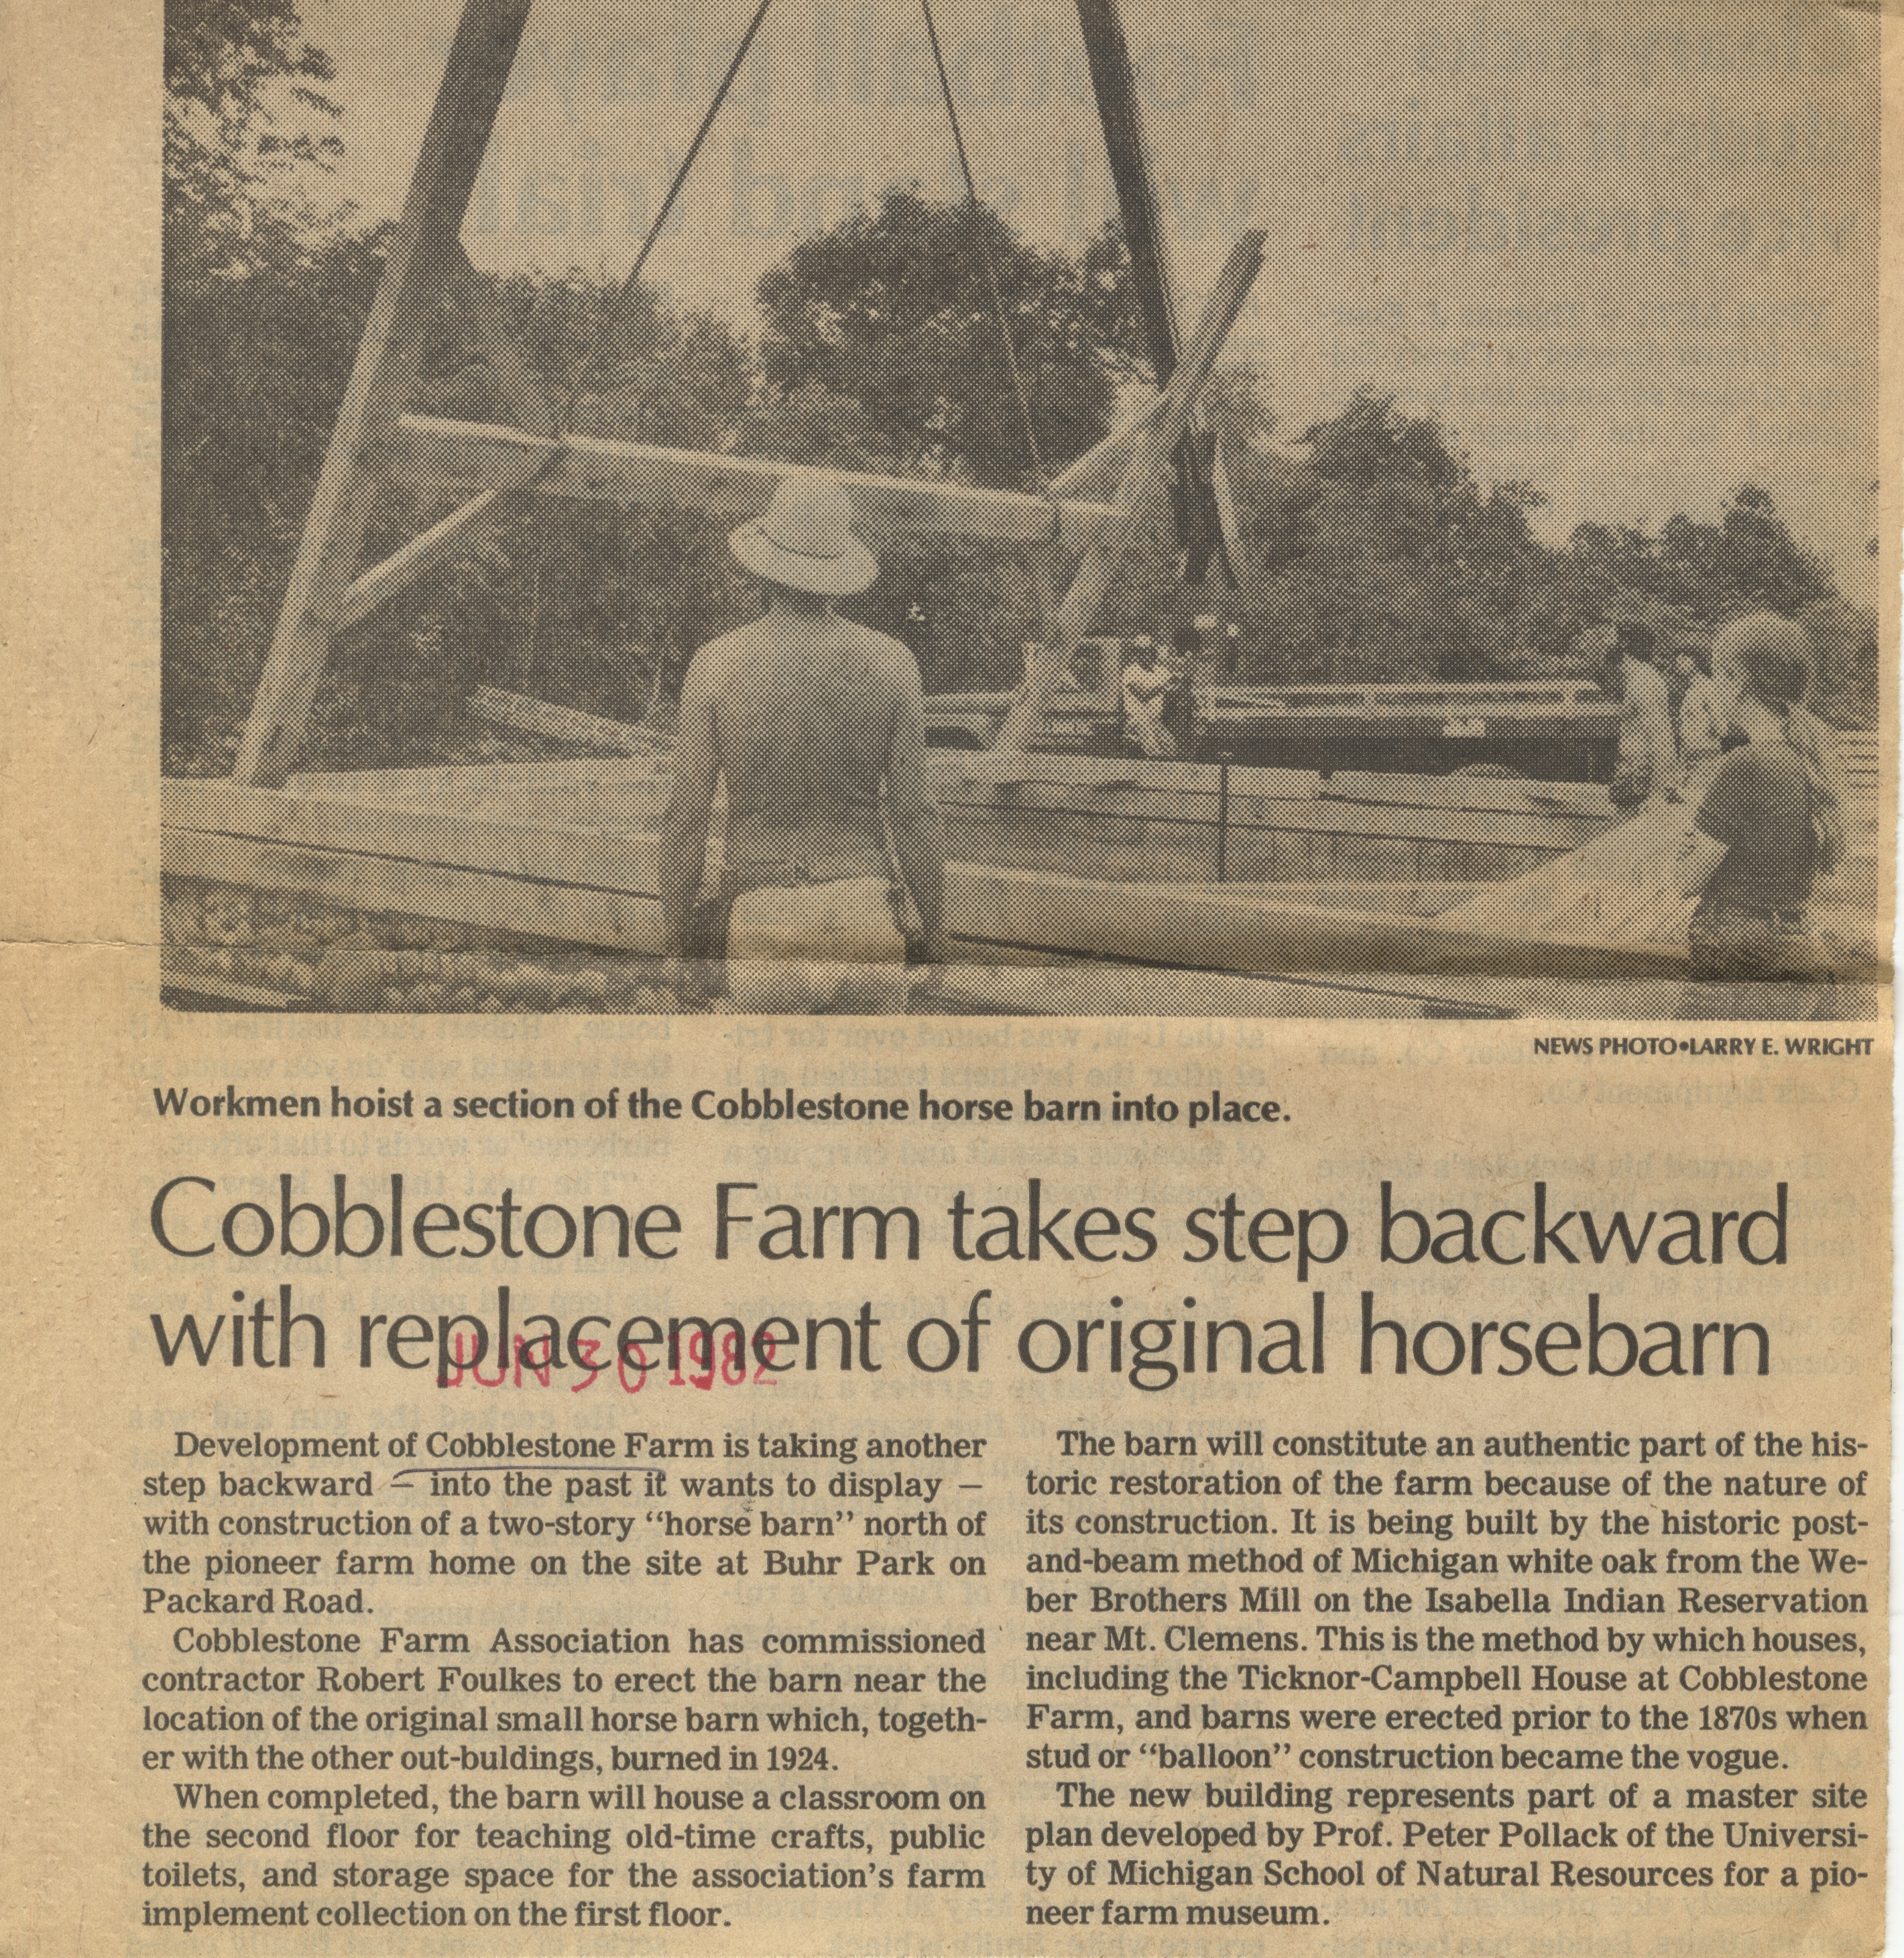 Cobblestone Farm Takes Step Backward With Replacement Of Original Horsebarn image